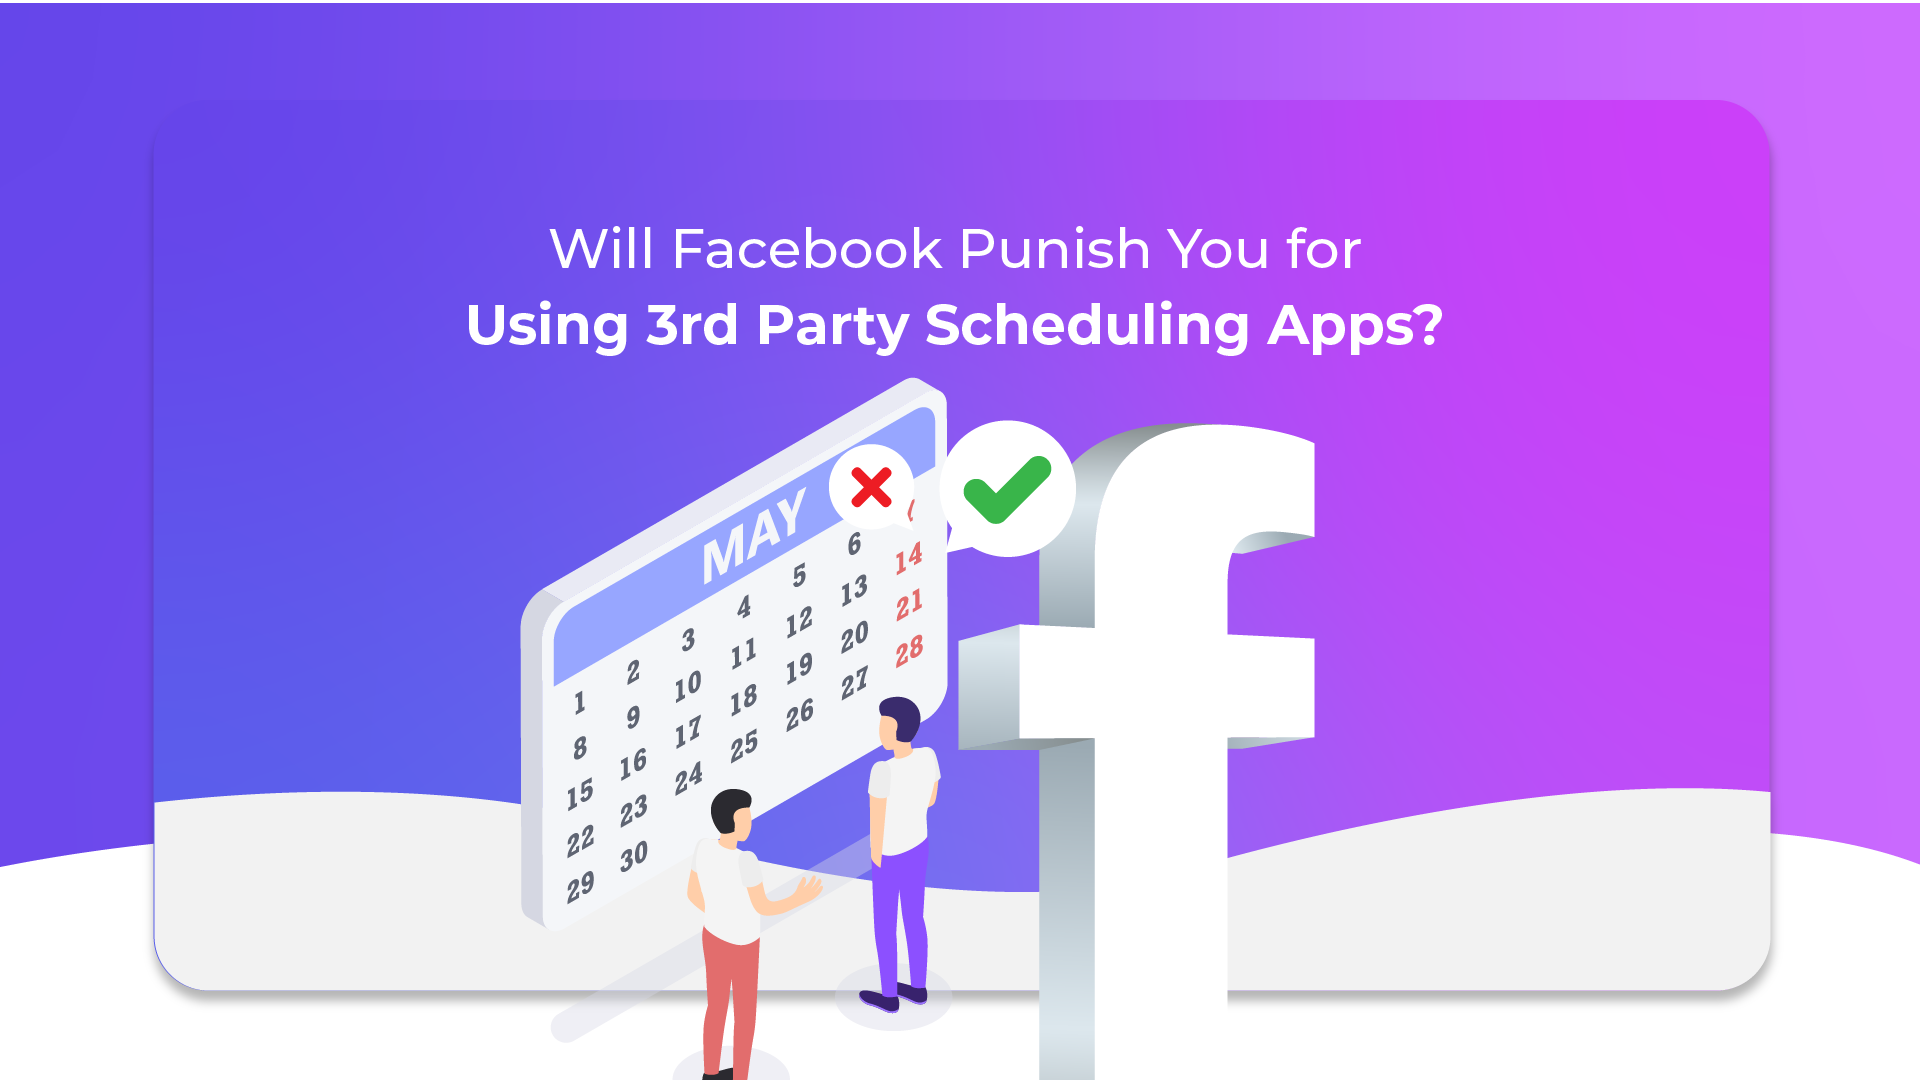 Will Facebook Punish You for Using 3rd Party Scheduling Apps?